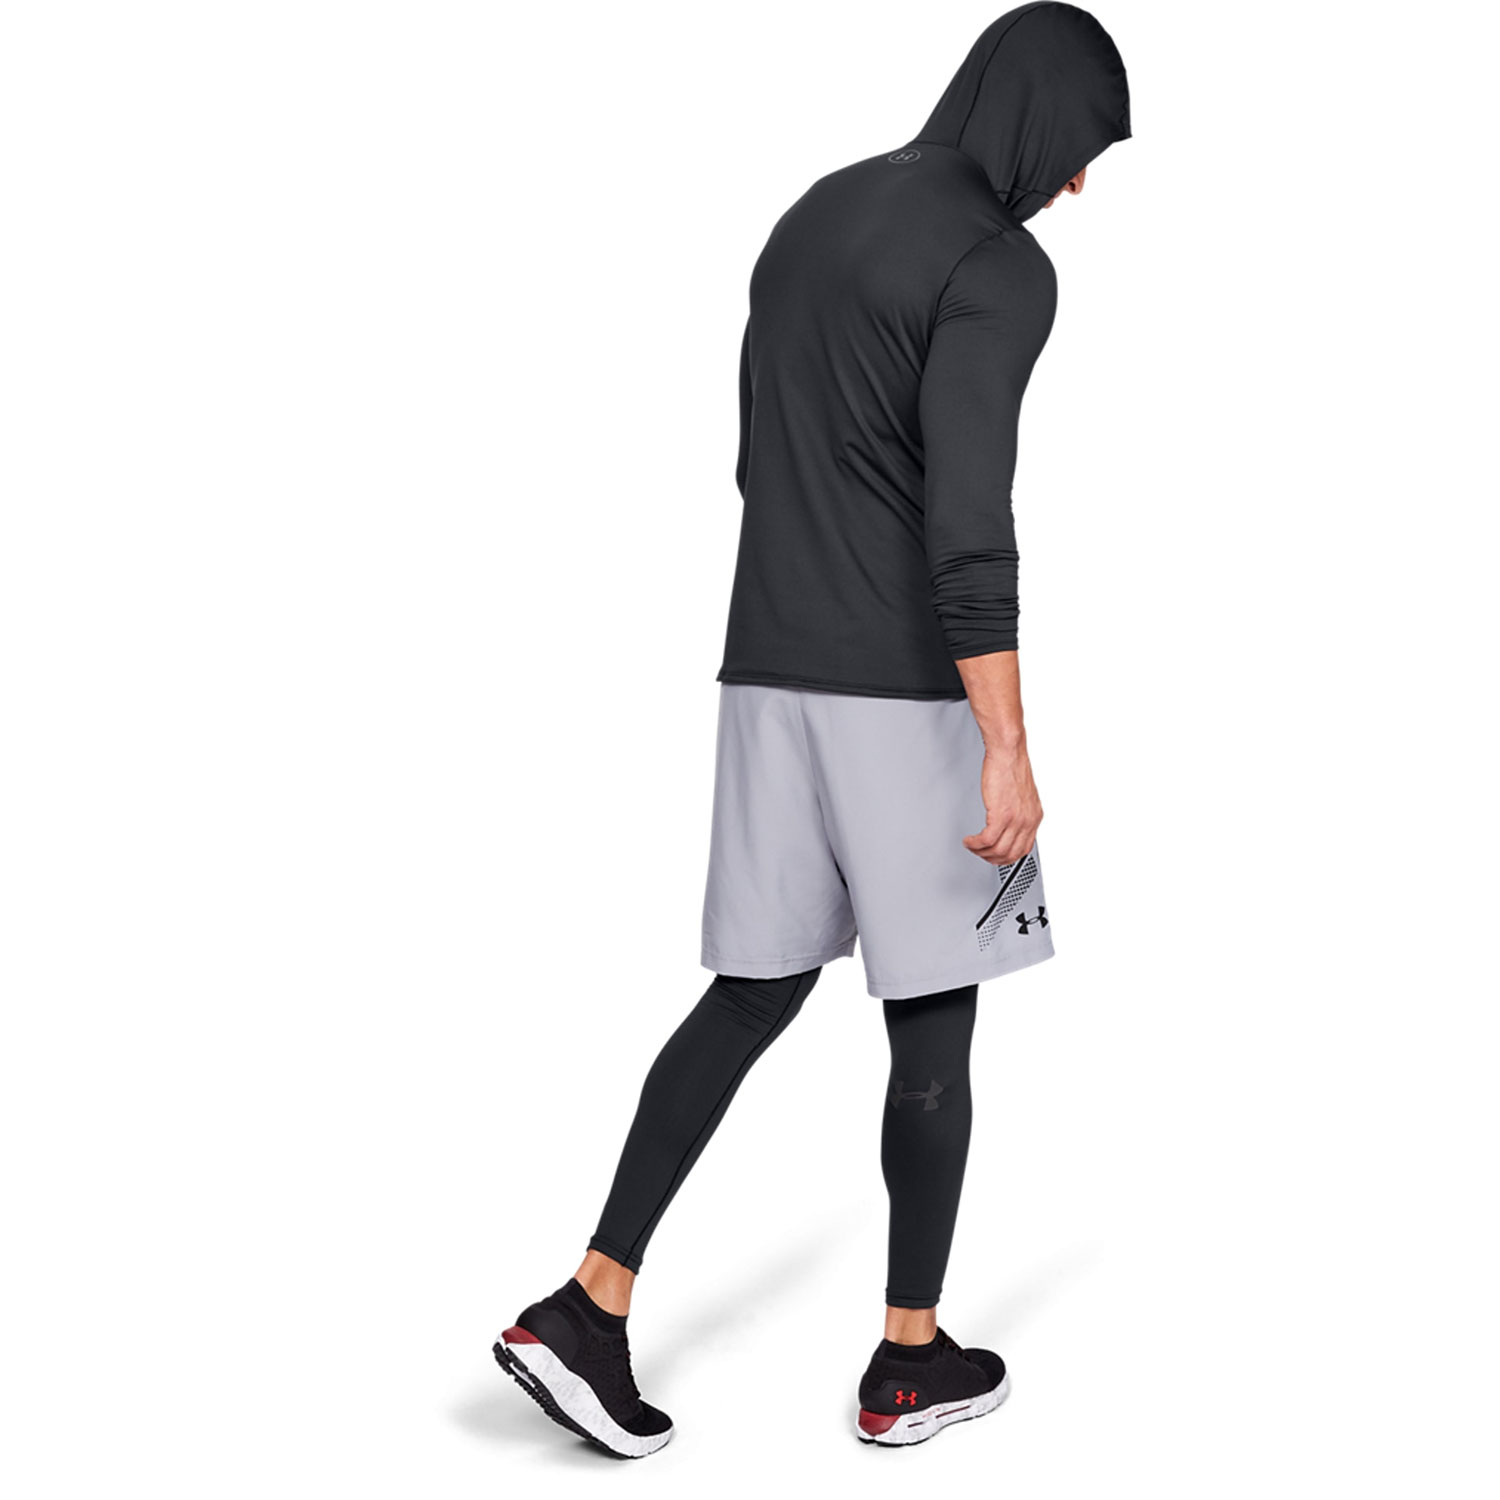 Under Armour ColdGear Tights - Black